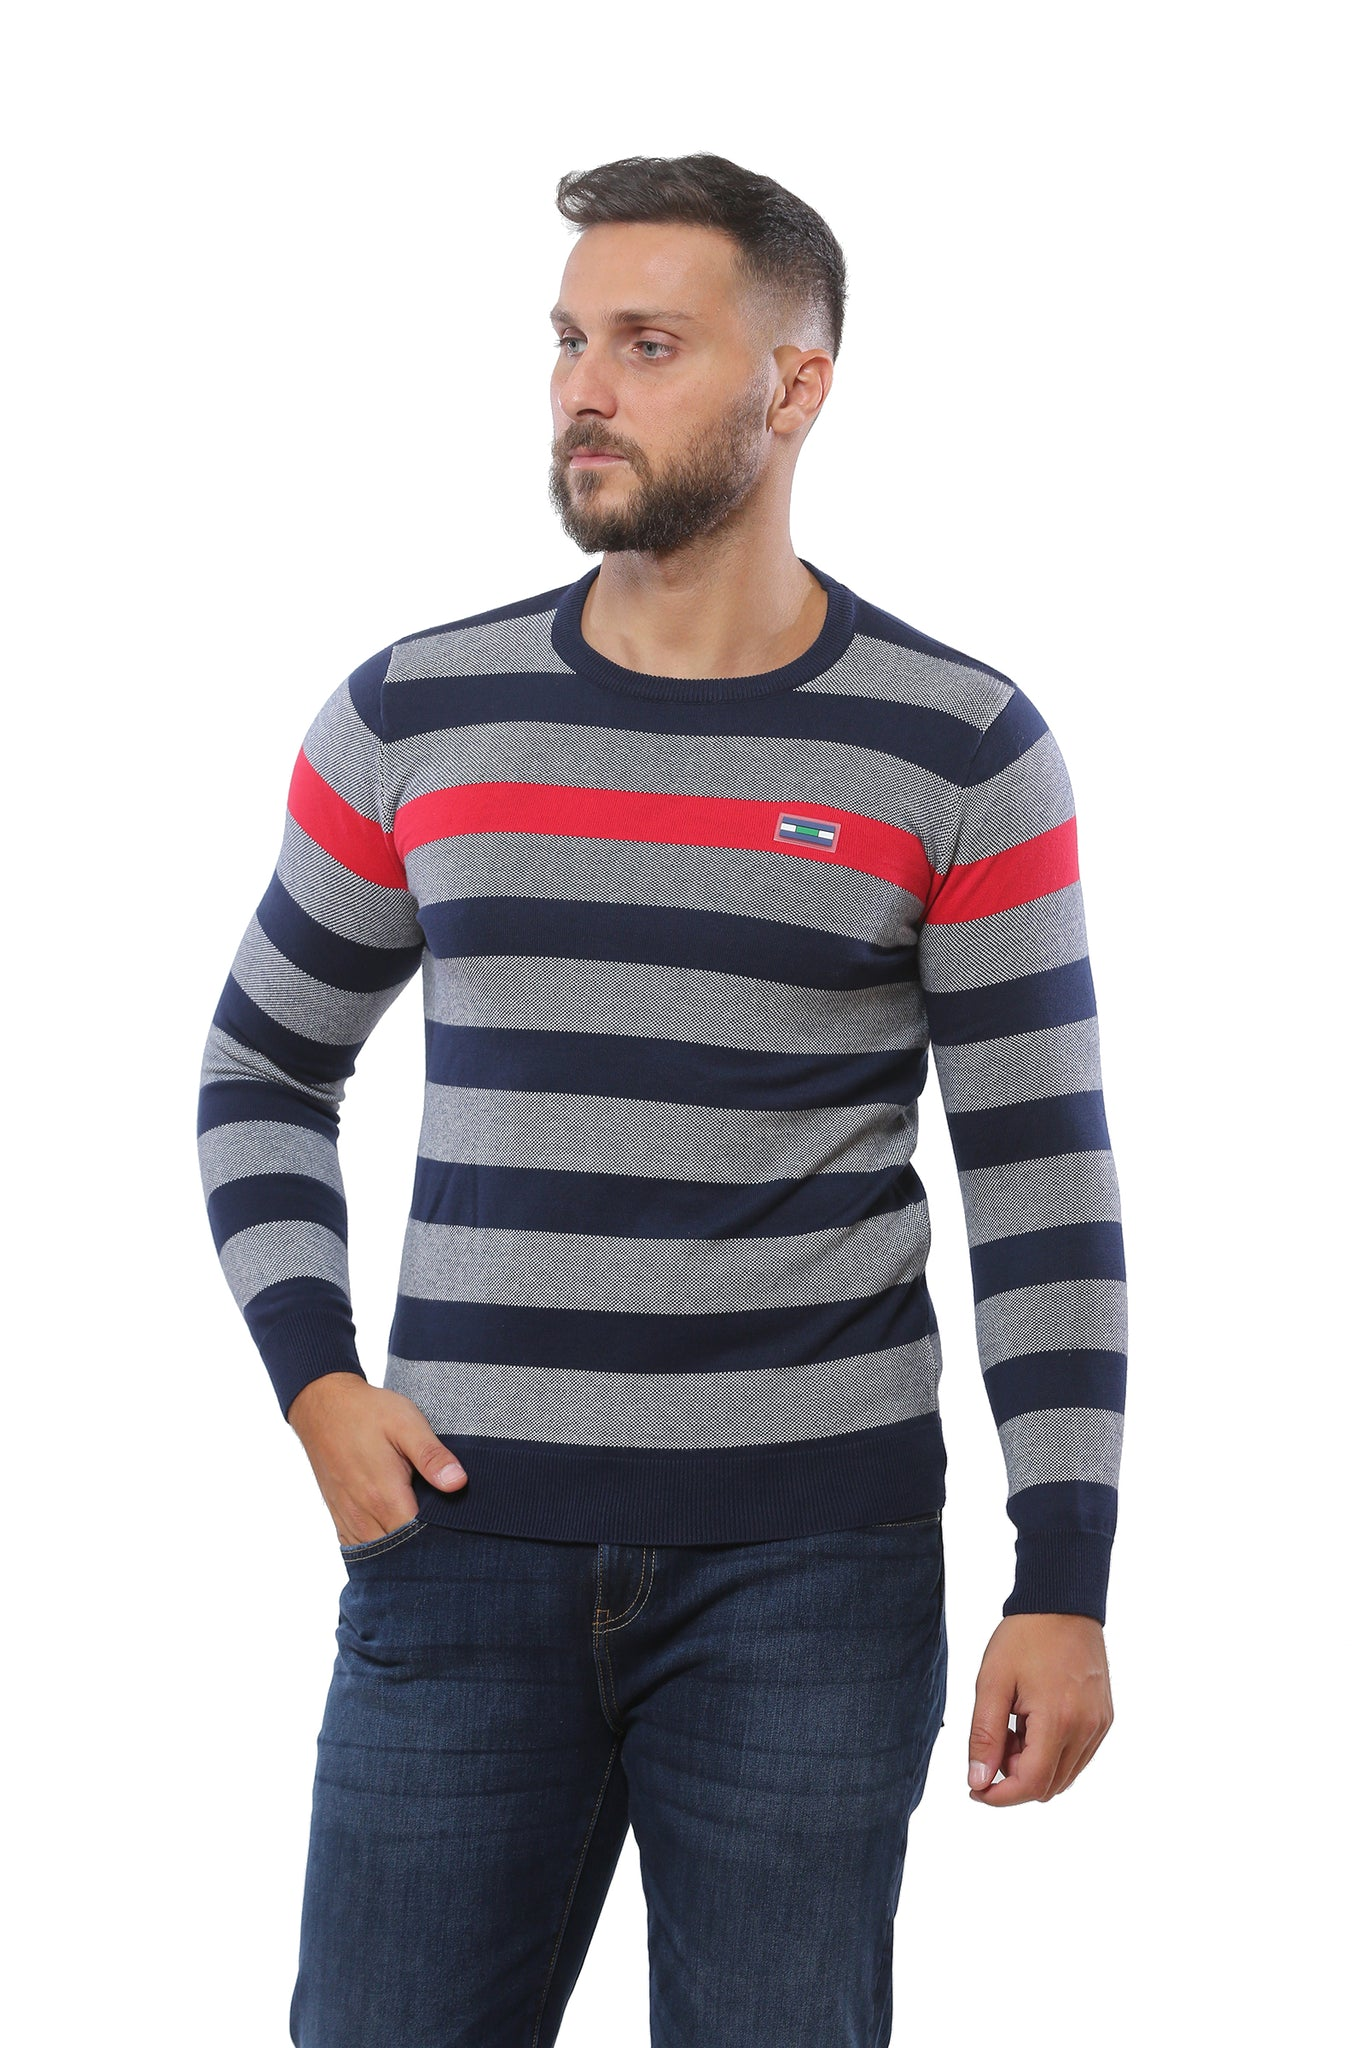 Sweater with Stripes | Dark Navy with Heather Grey